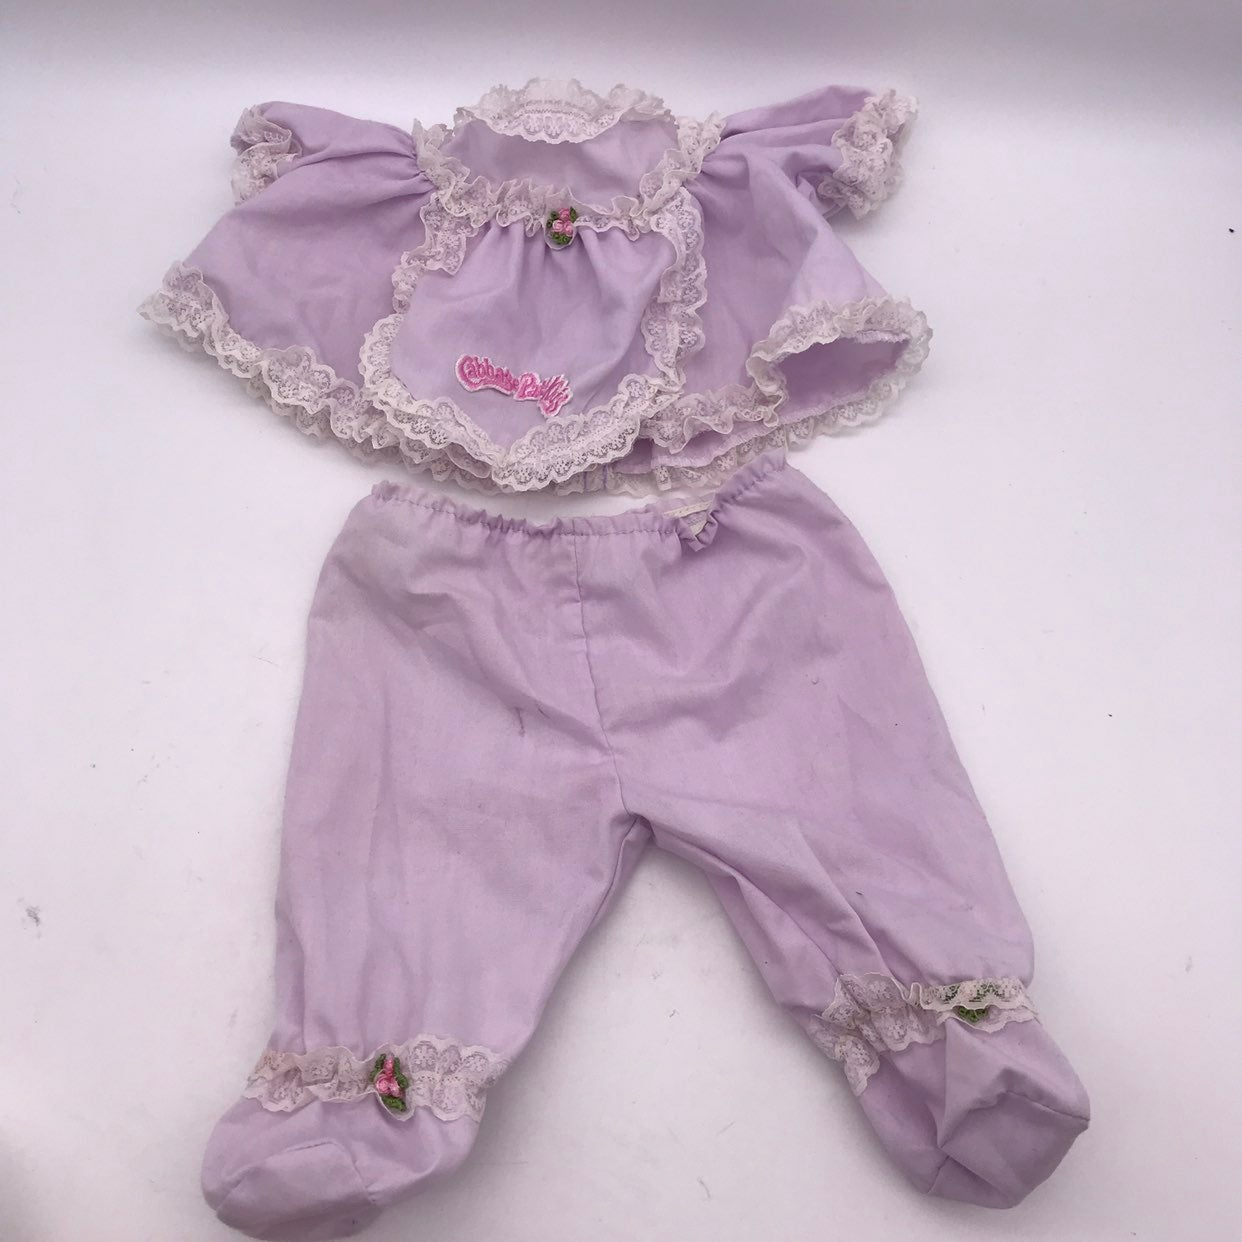 Cabbage Patch Kids Doll Outfit